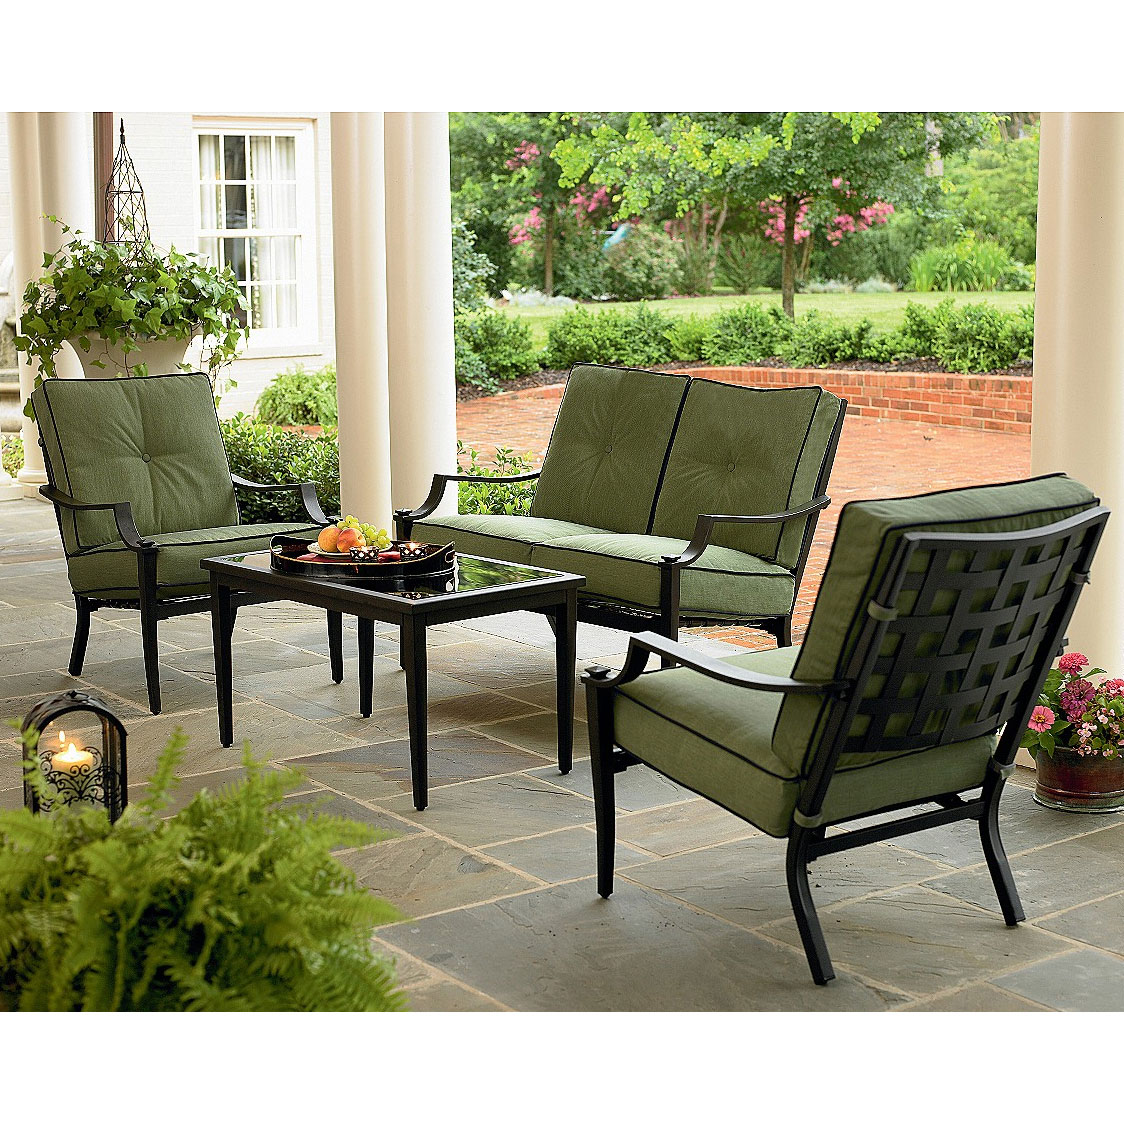 outdoor chairs kmart reading chair for bedroom cushions furniture peenmedia